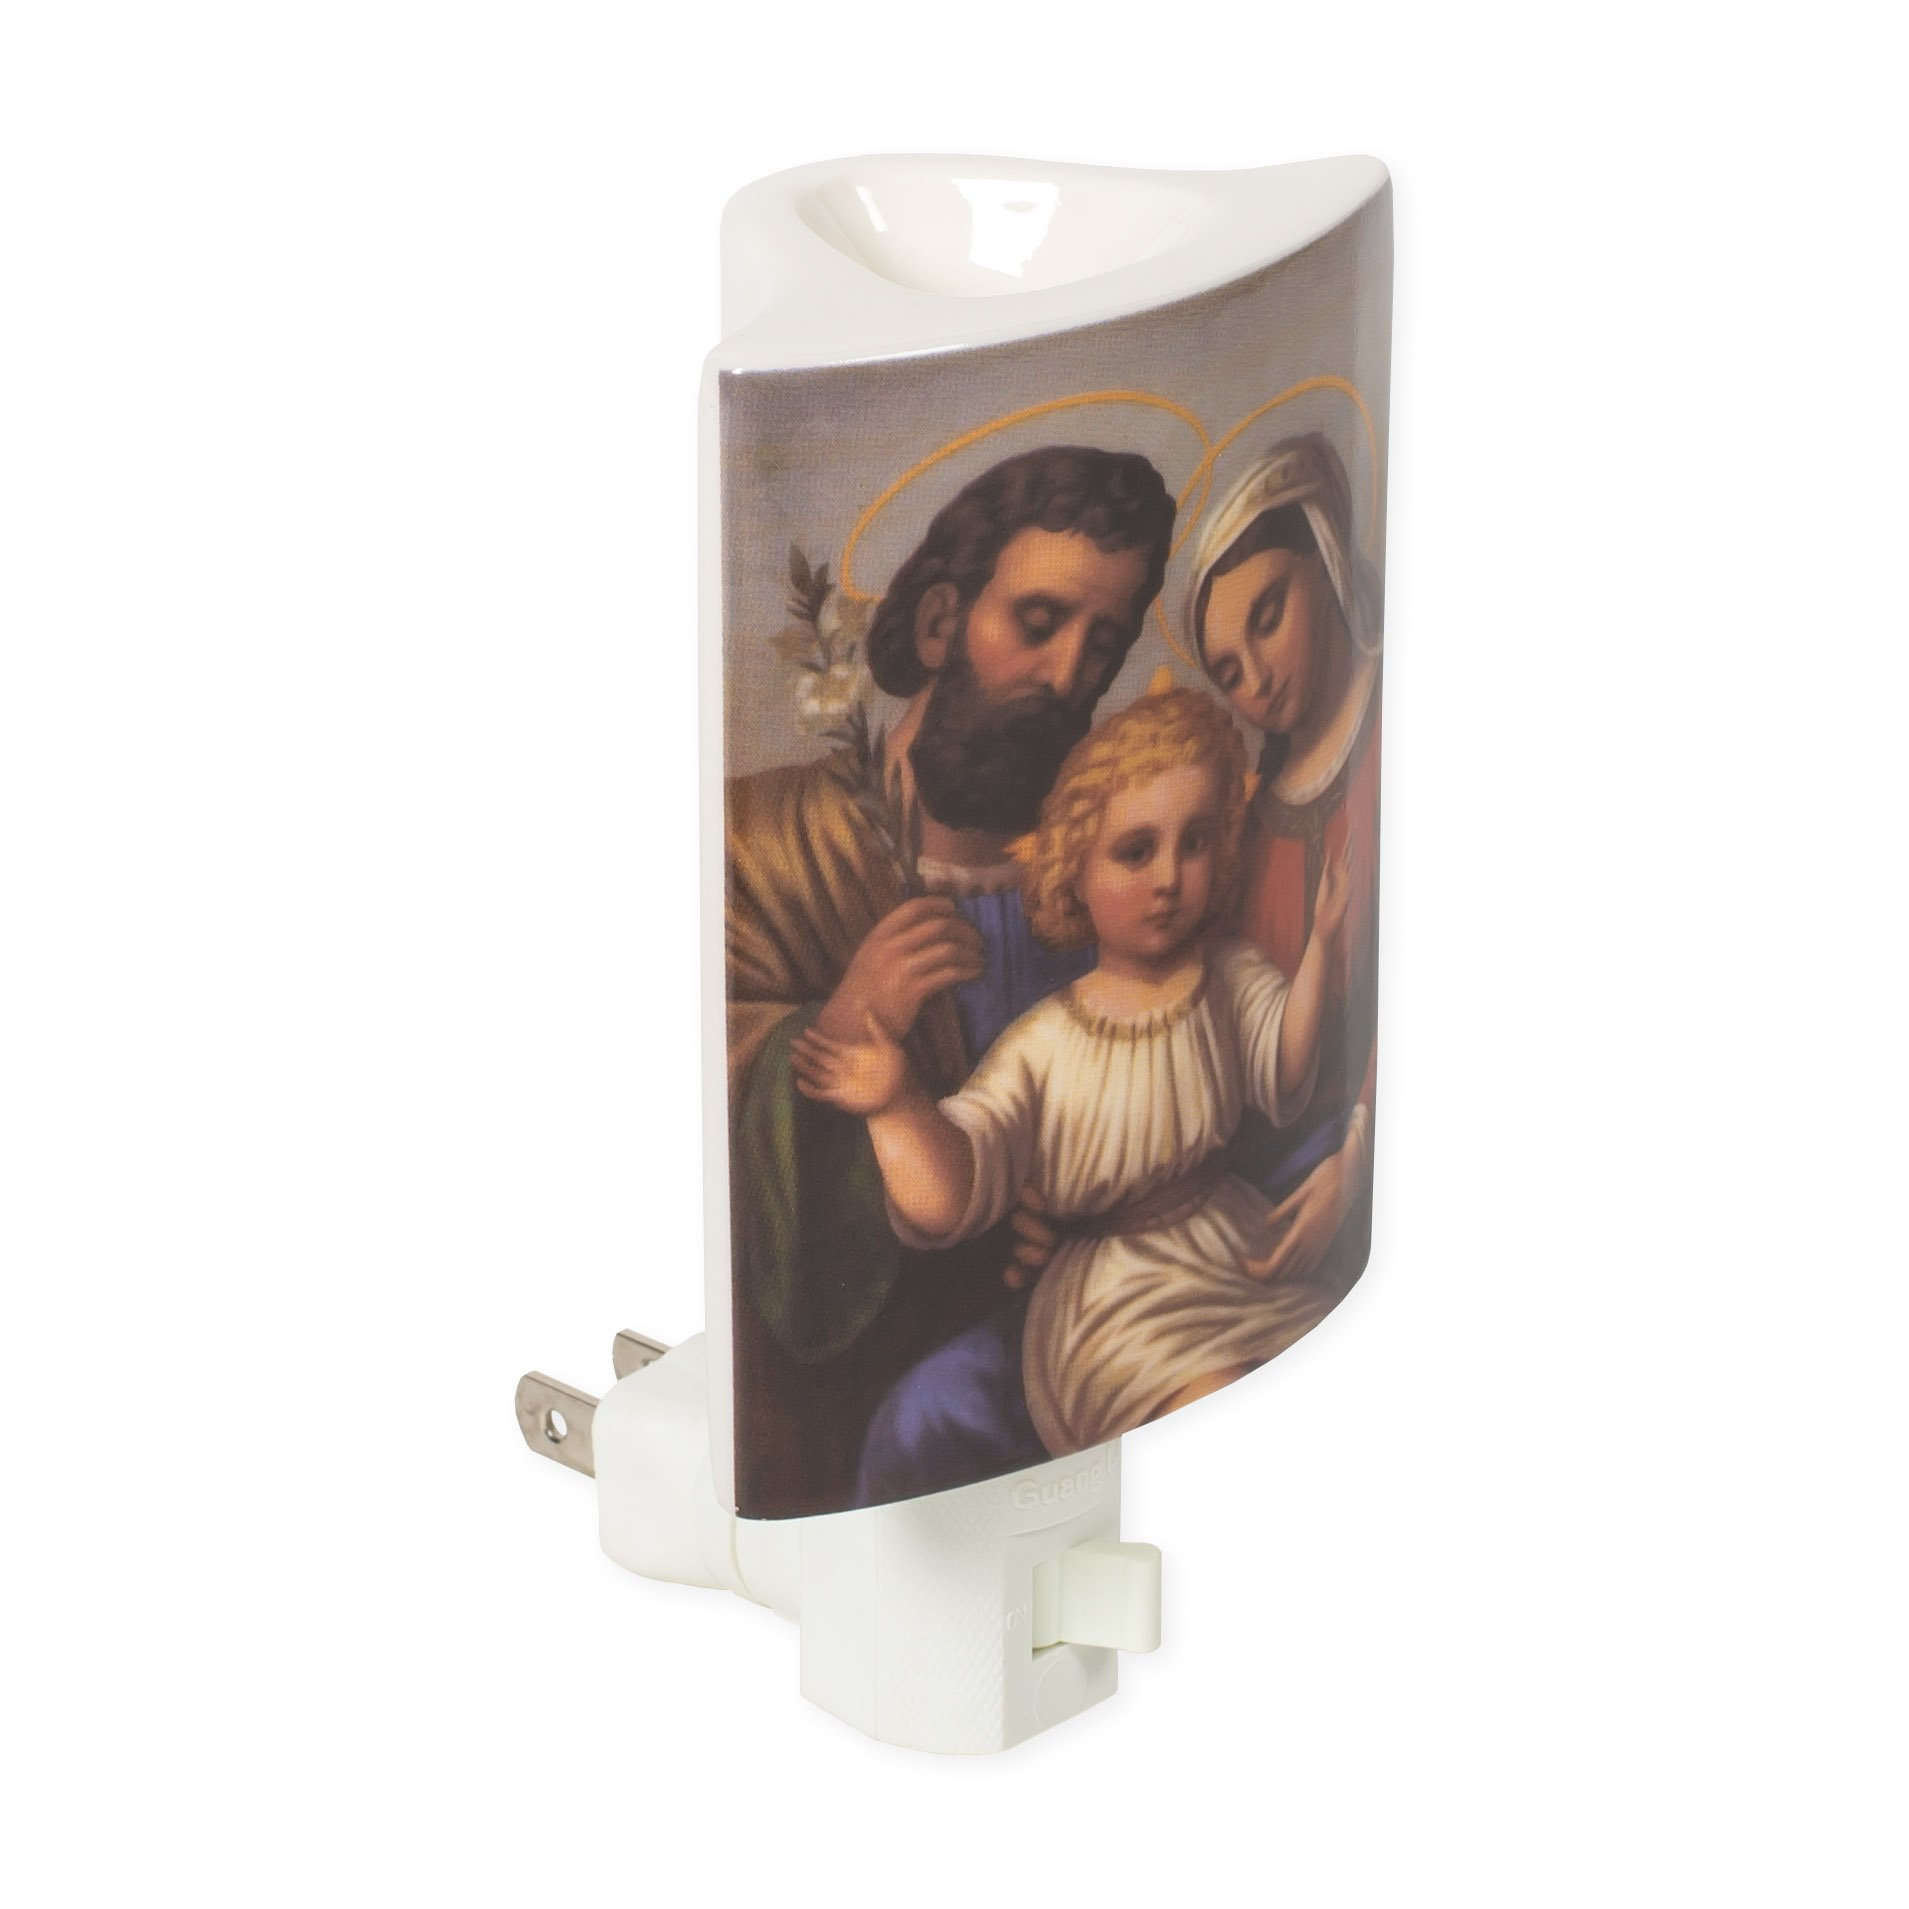 Holy Family Vintage 3 x 5.5 Porcelain Electric Wall Plug-In Oil Burner Night Light